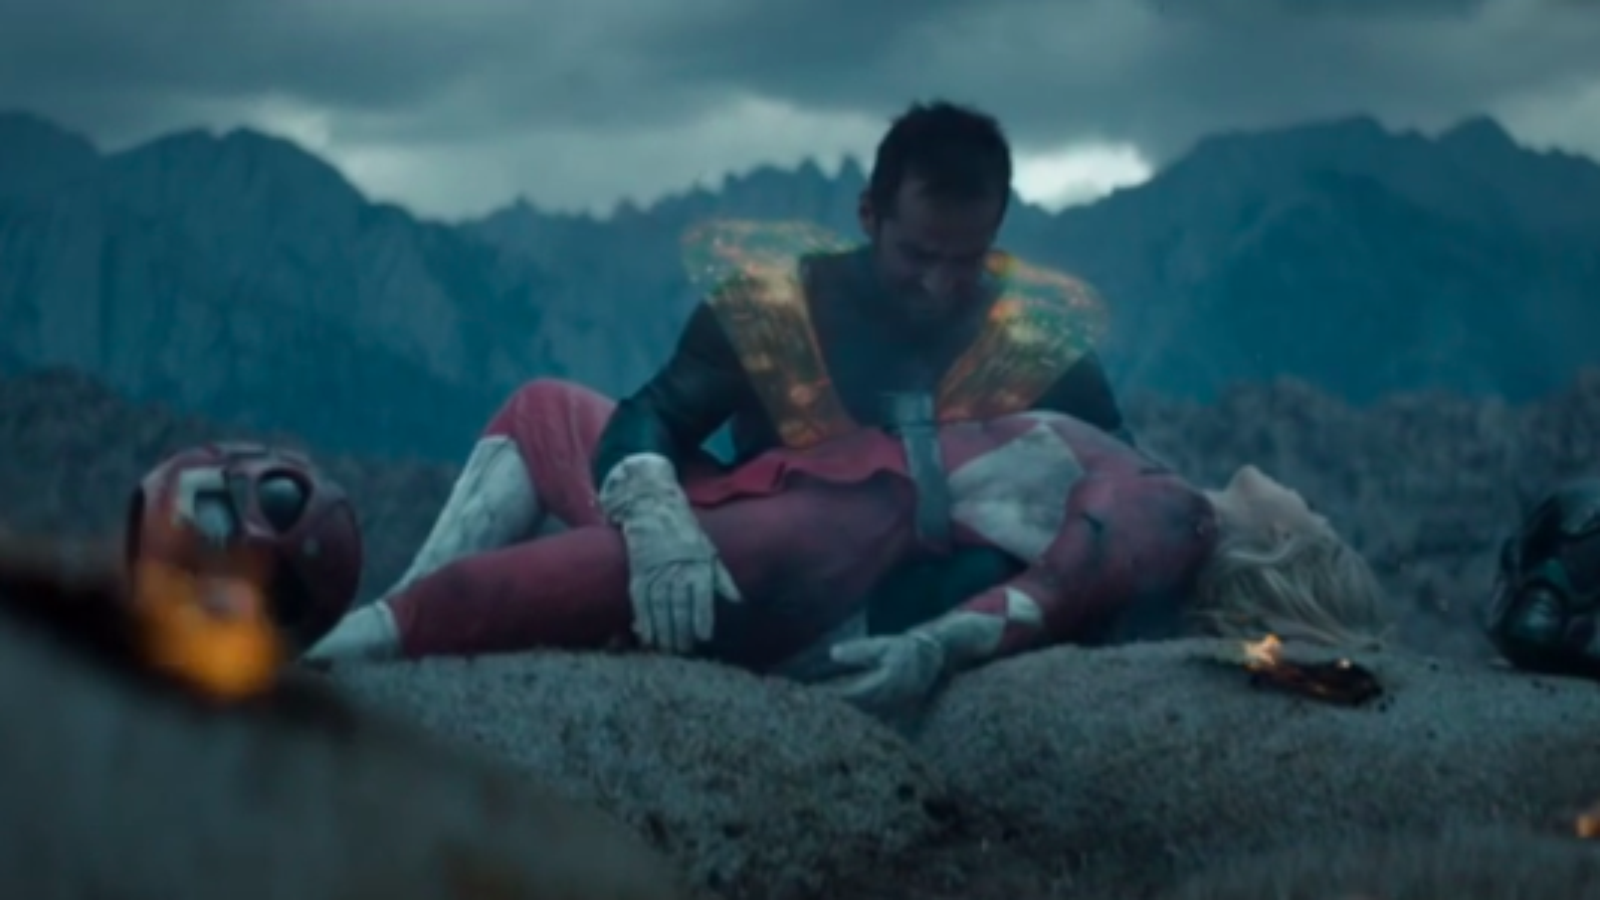 Screenshot 2015 02 24 09.49.39.0.0 This Insane Power Rangers Remake Is Incredibly Brutal